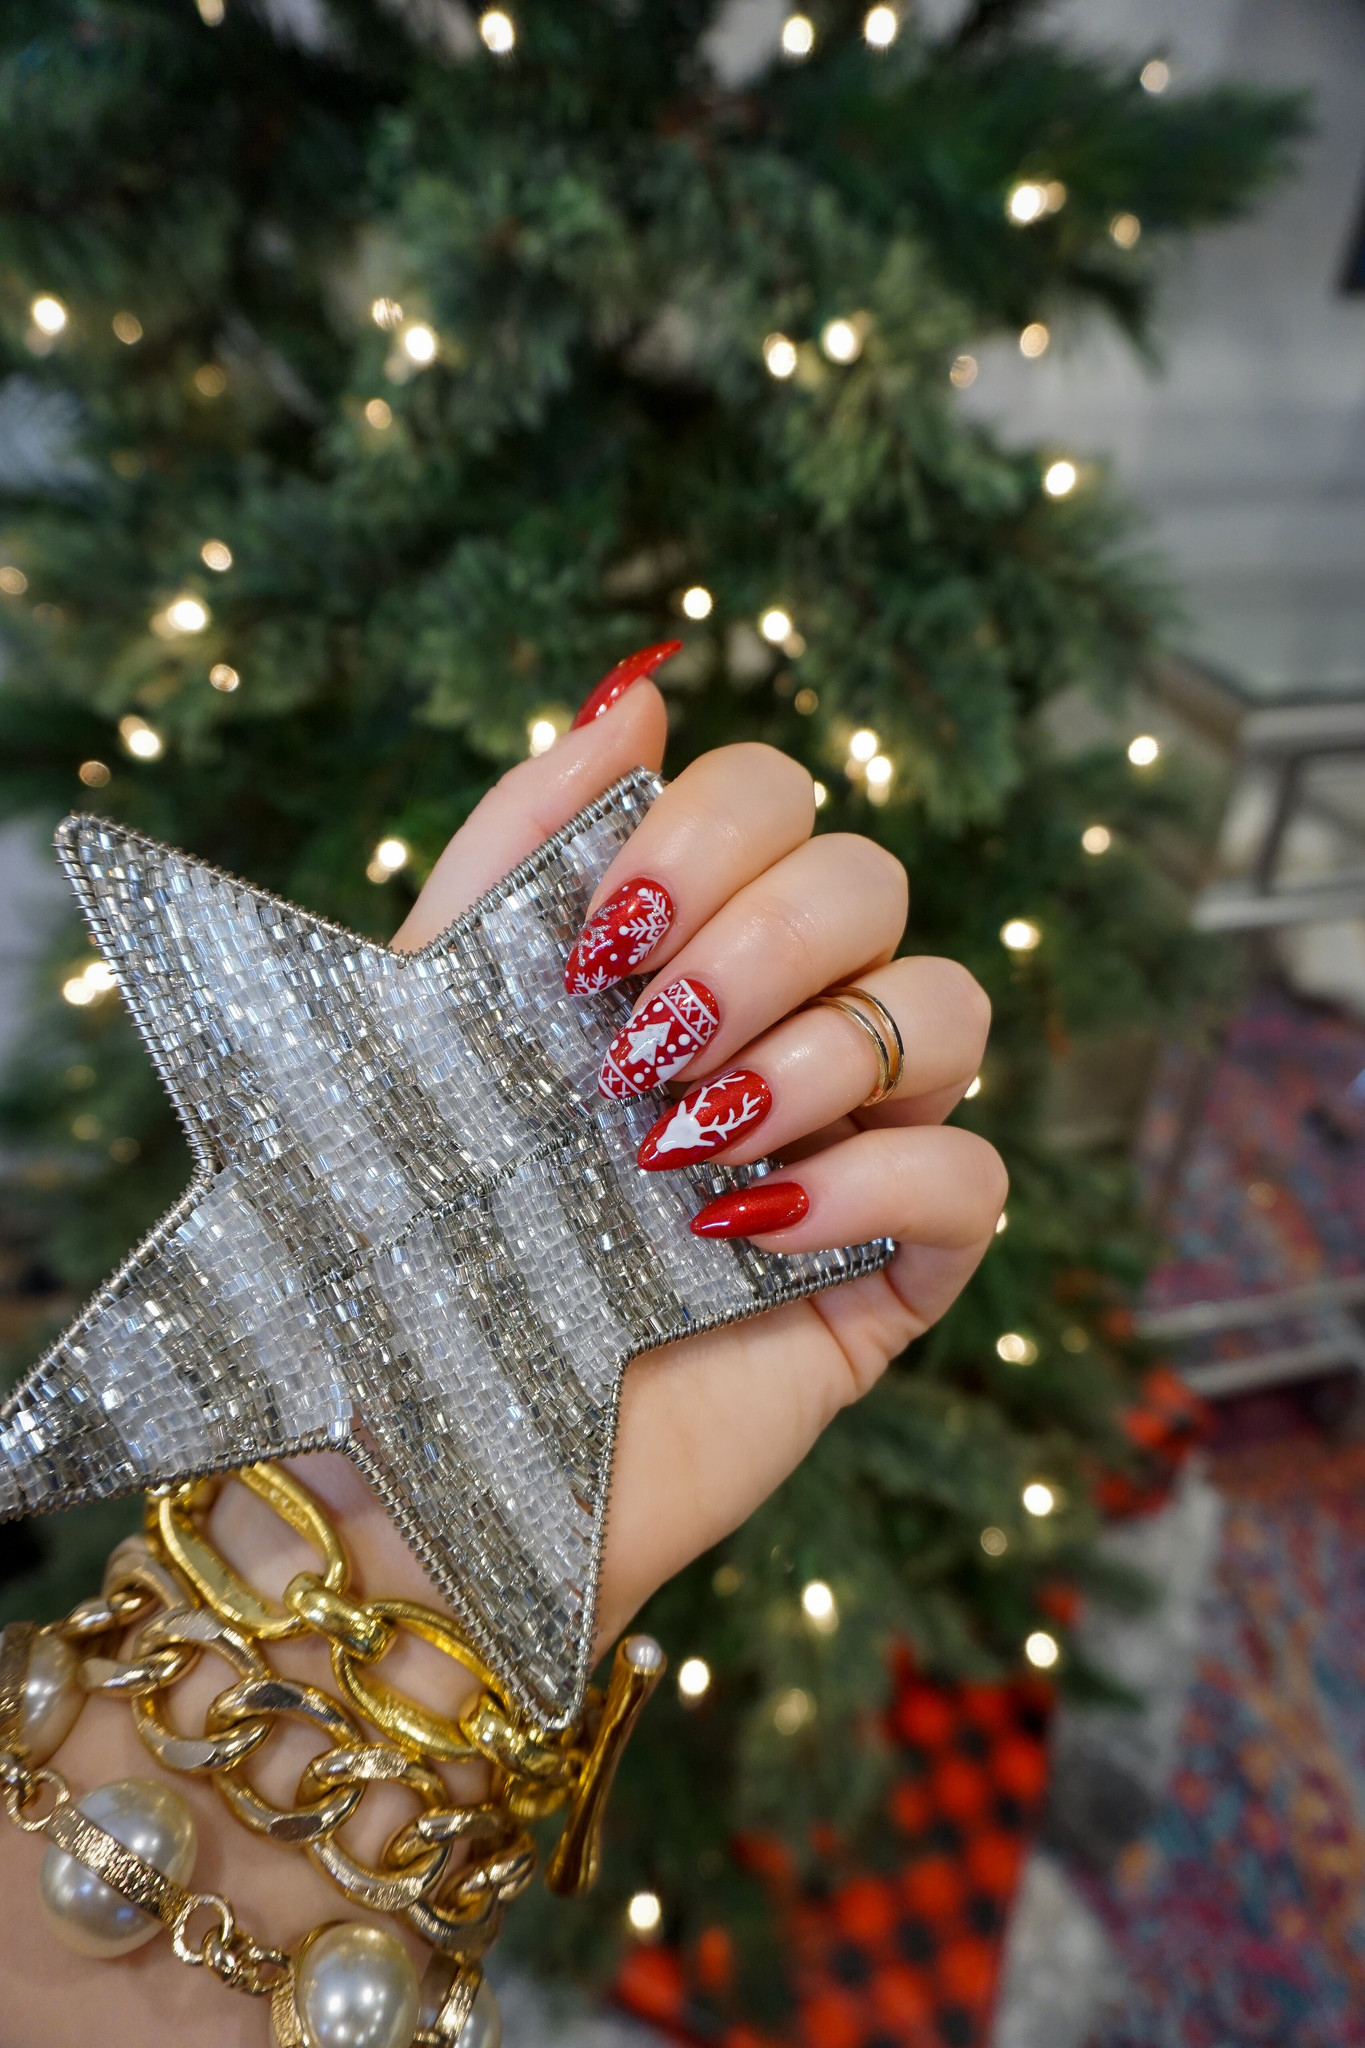 Red Christmas Sweater Nails | Holiday Manicures | Holiday Nails | Cutest Christmas Sweater Nails | Snowflake Nails | Reindeer Nail Art | Christmas Nail Ideas | December Nails | Christmas Lights | Almond Nails